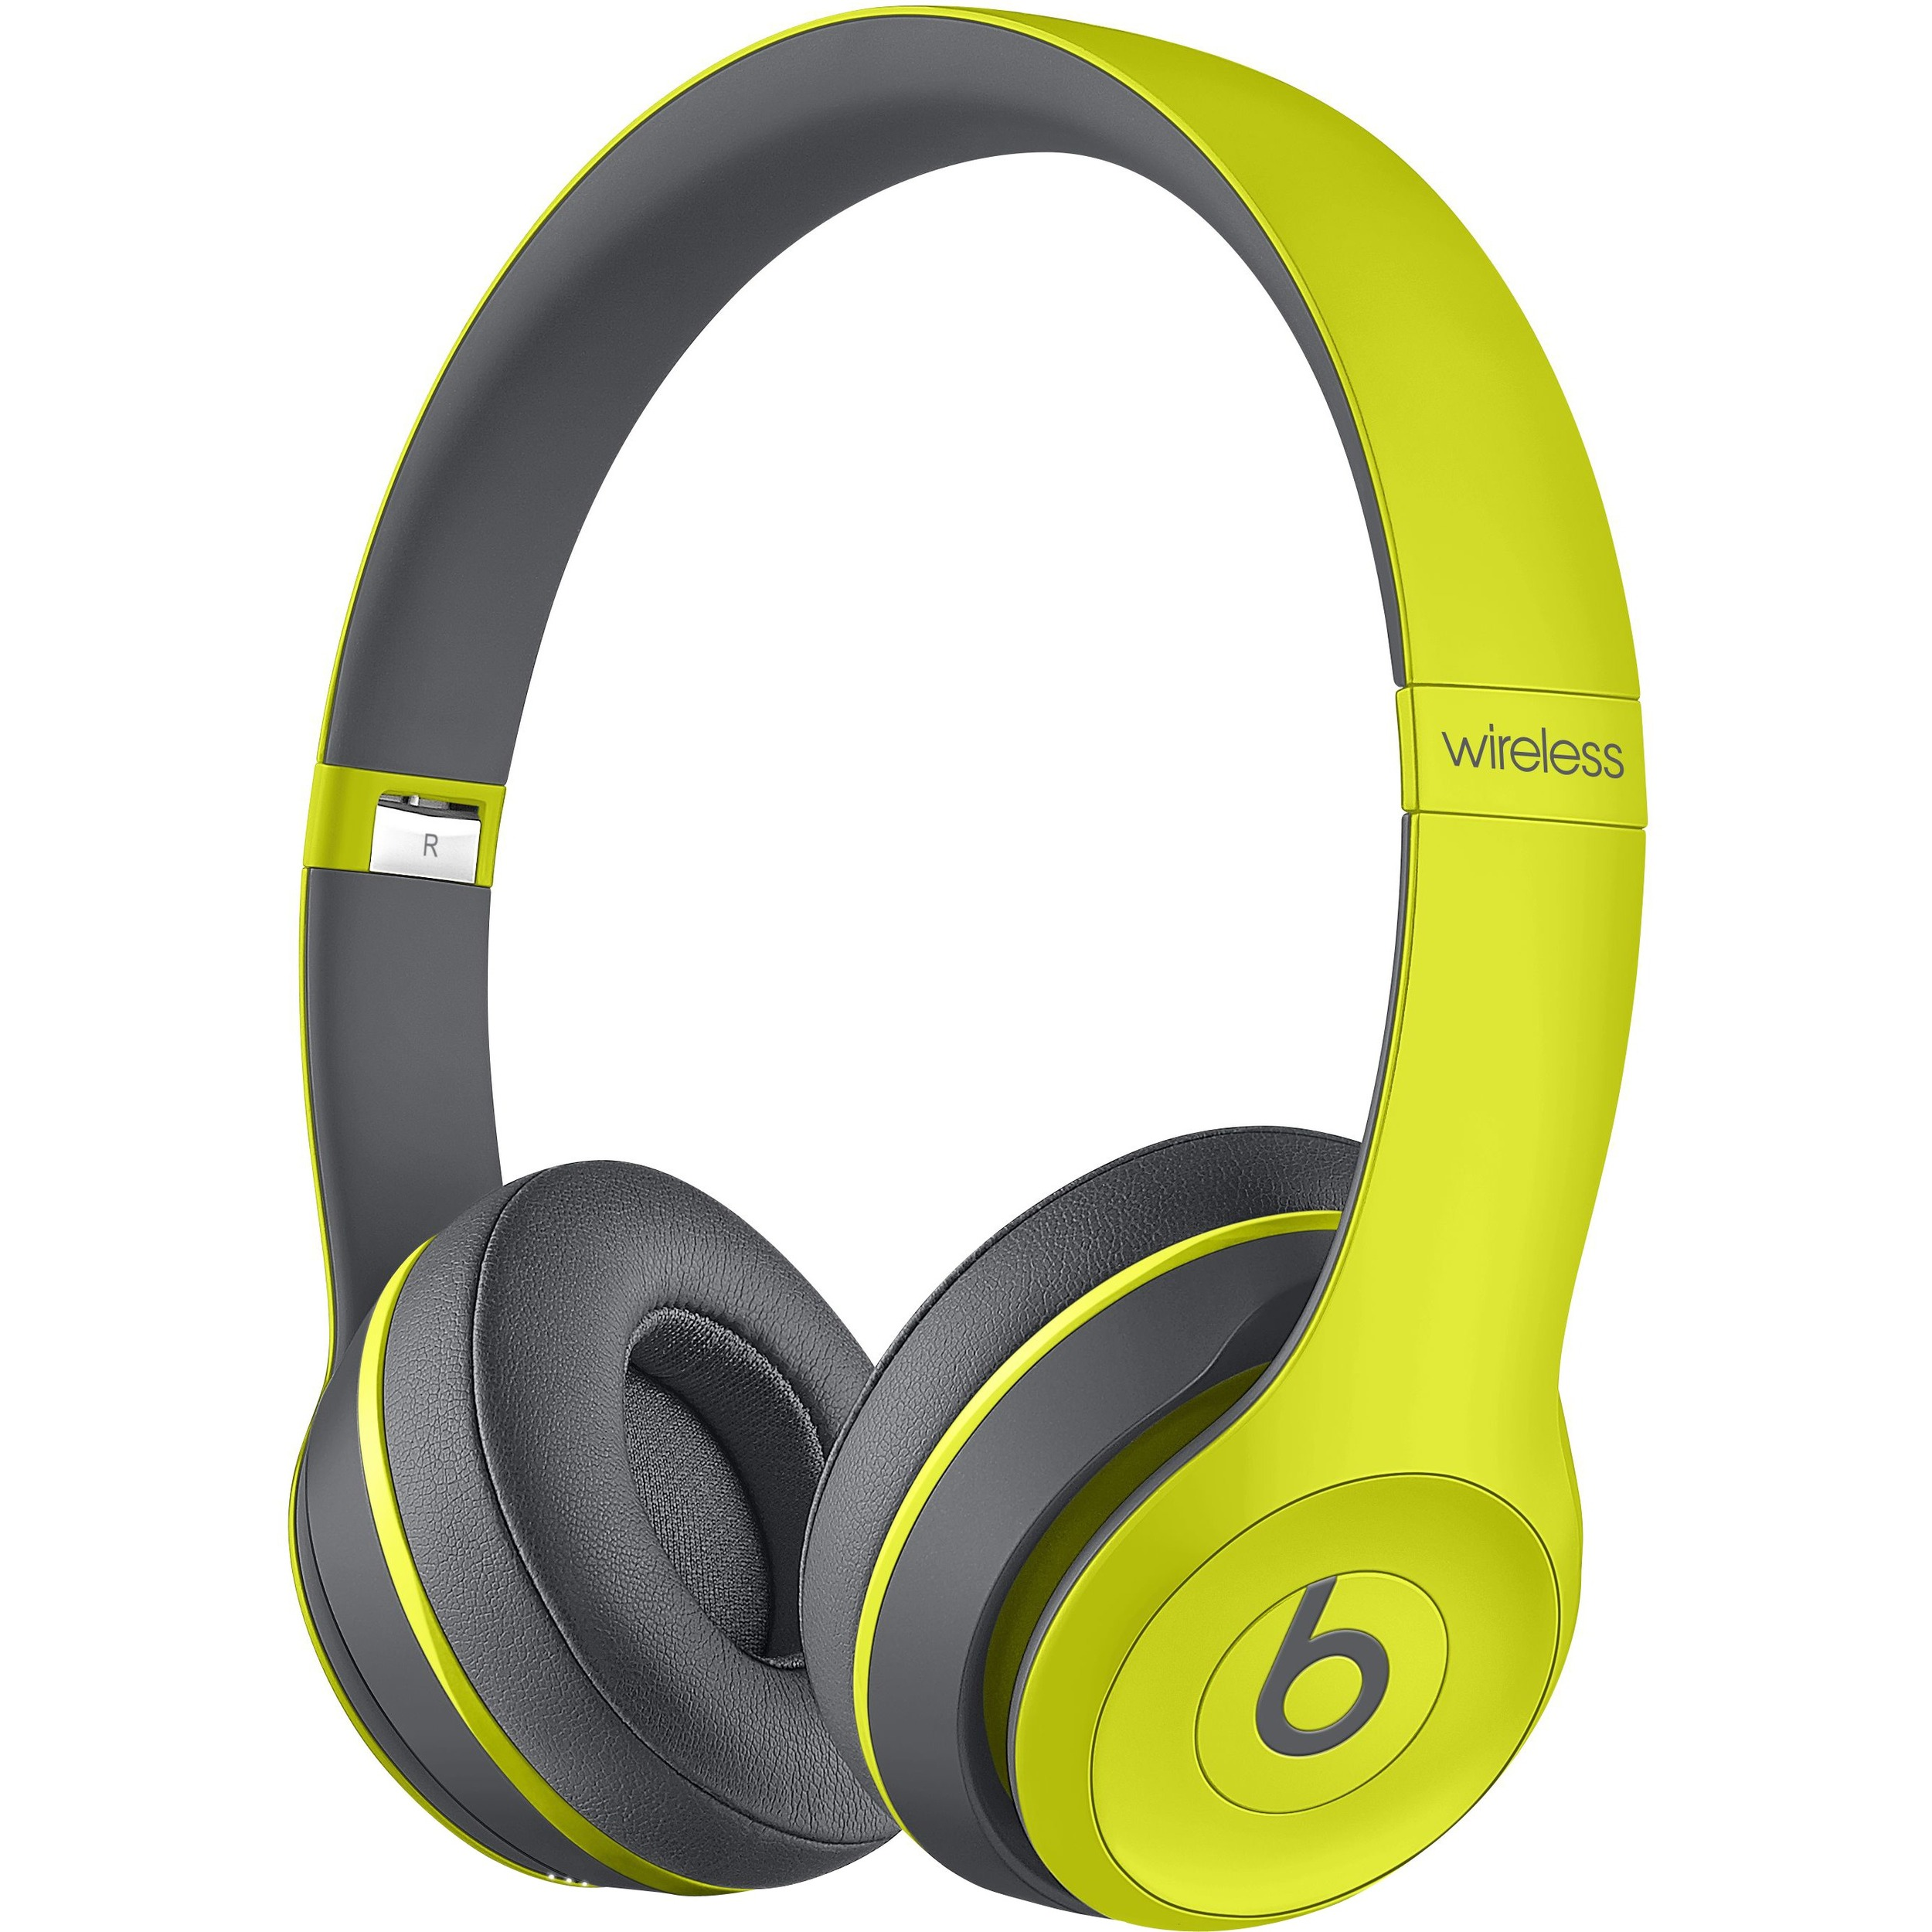 Beats by Dr. Dre Solo2 Wired/Wireless Bluetooth Stereo Headset